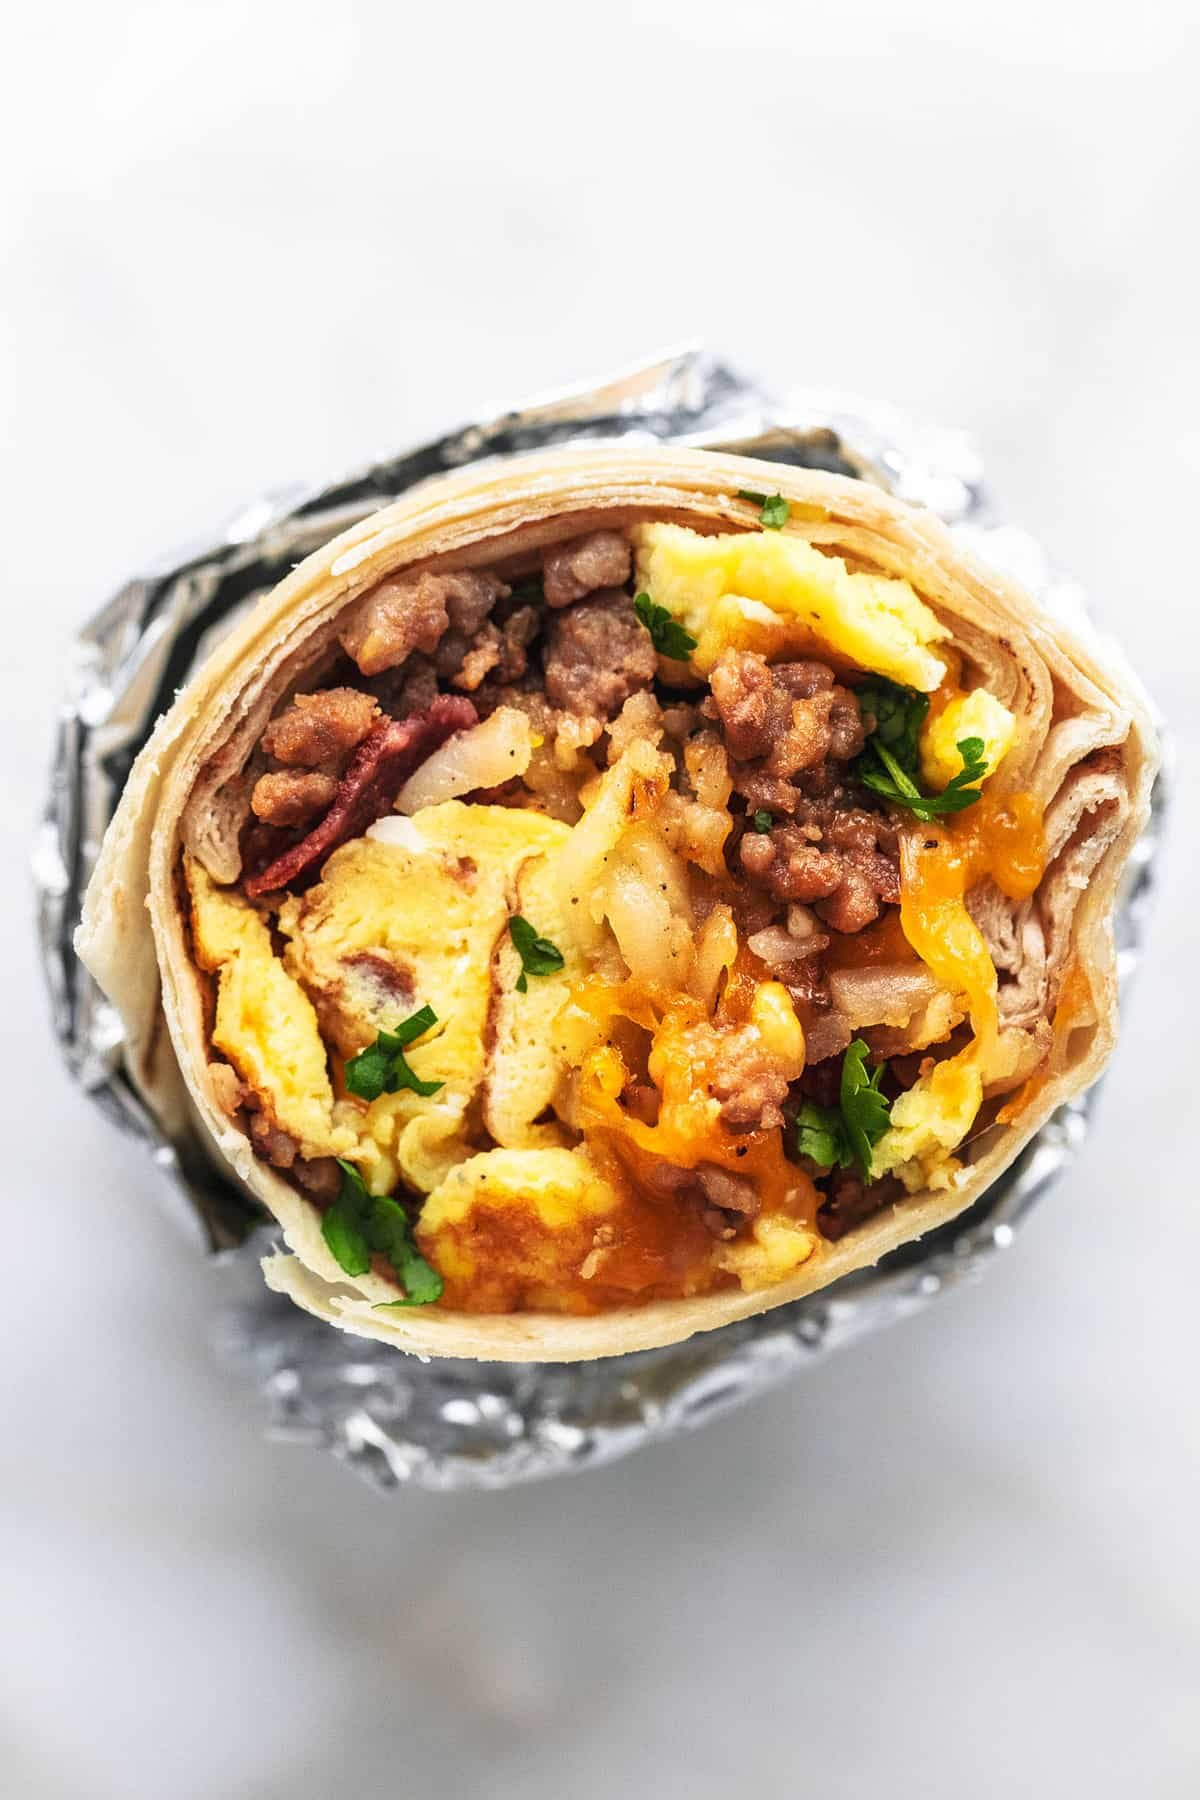 Easy make ahead egg and sausage Freezer Breakfast Burritos Recipe | lecremedelacrumb.com